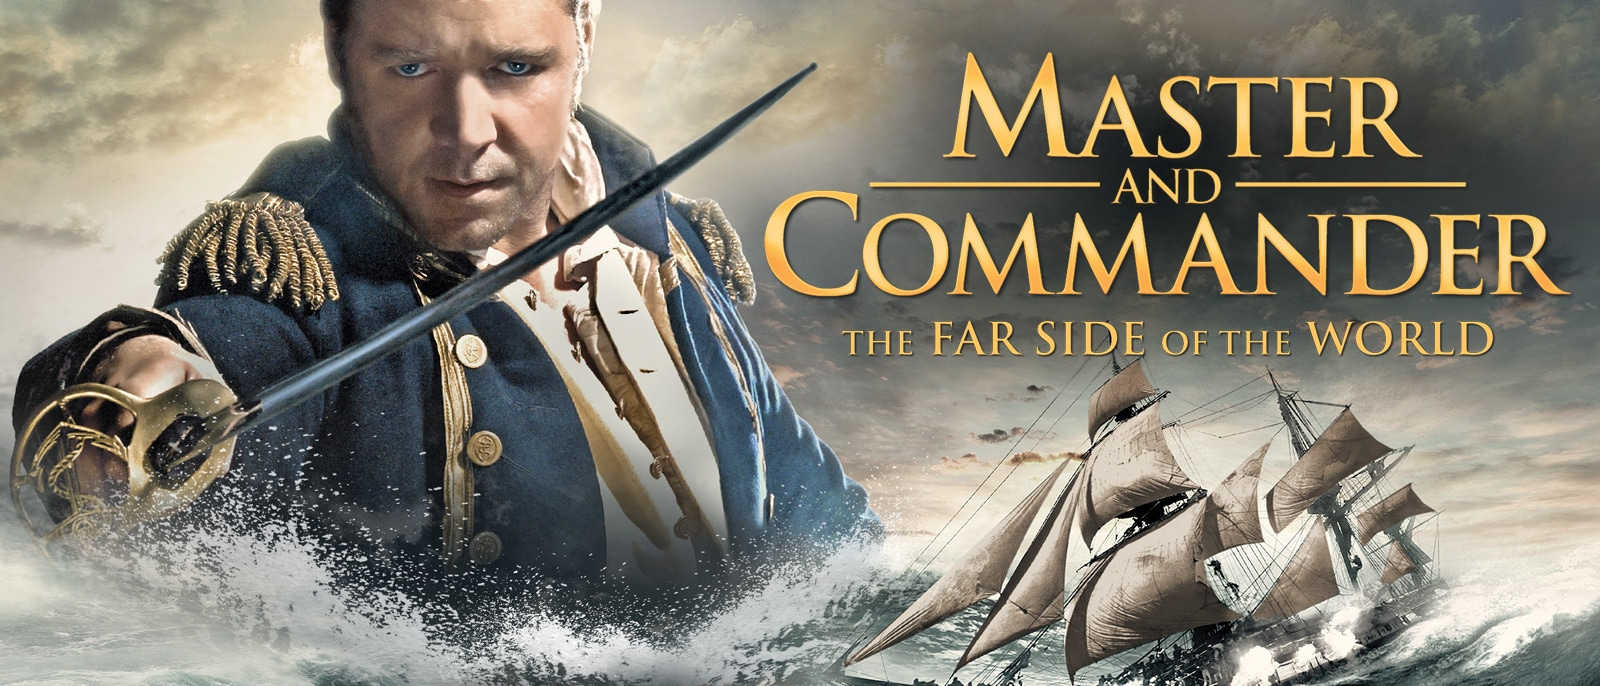 Master and Commander: The Far Side of the World Hero